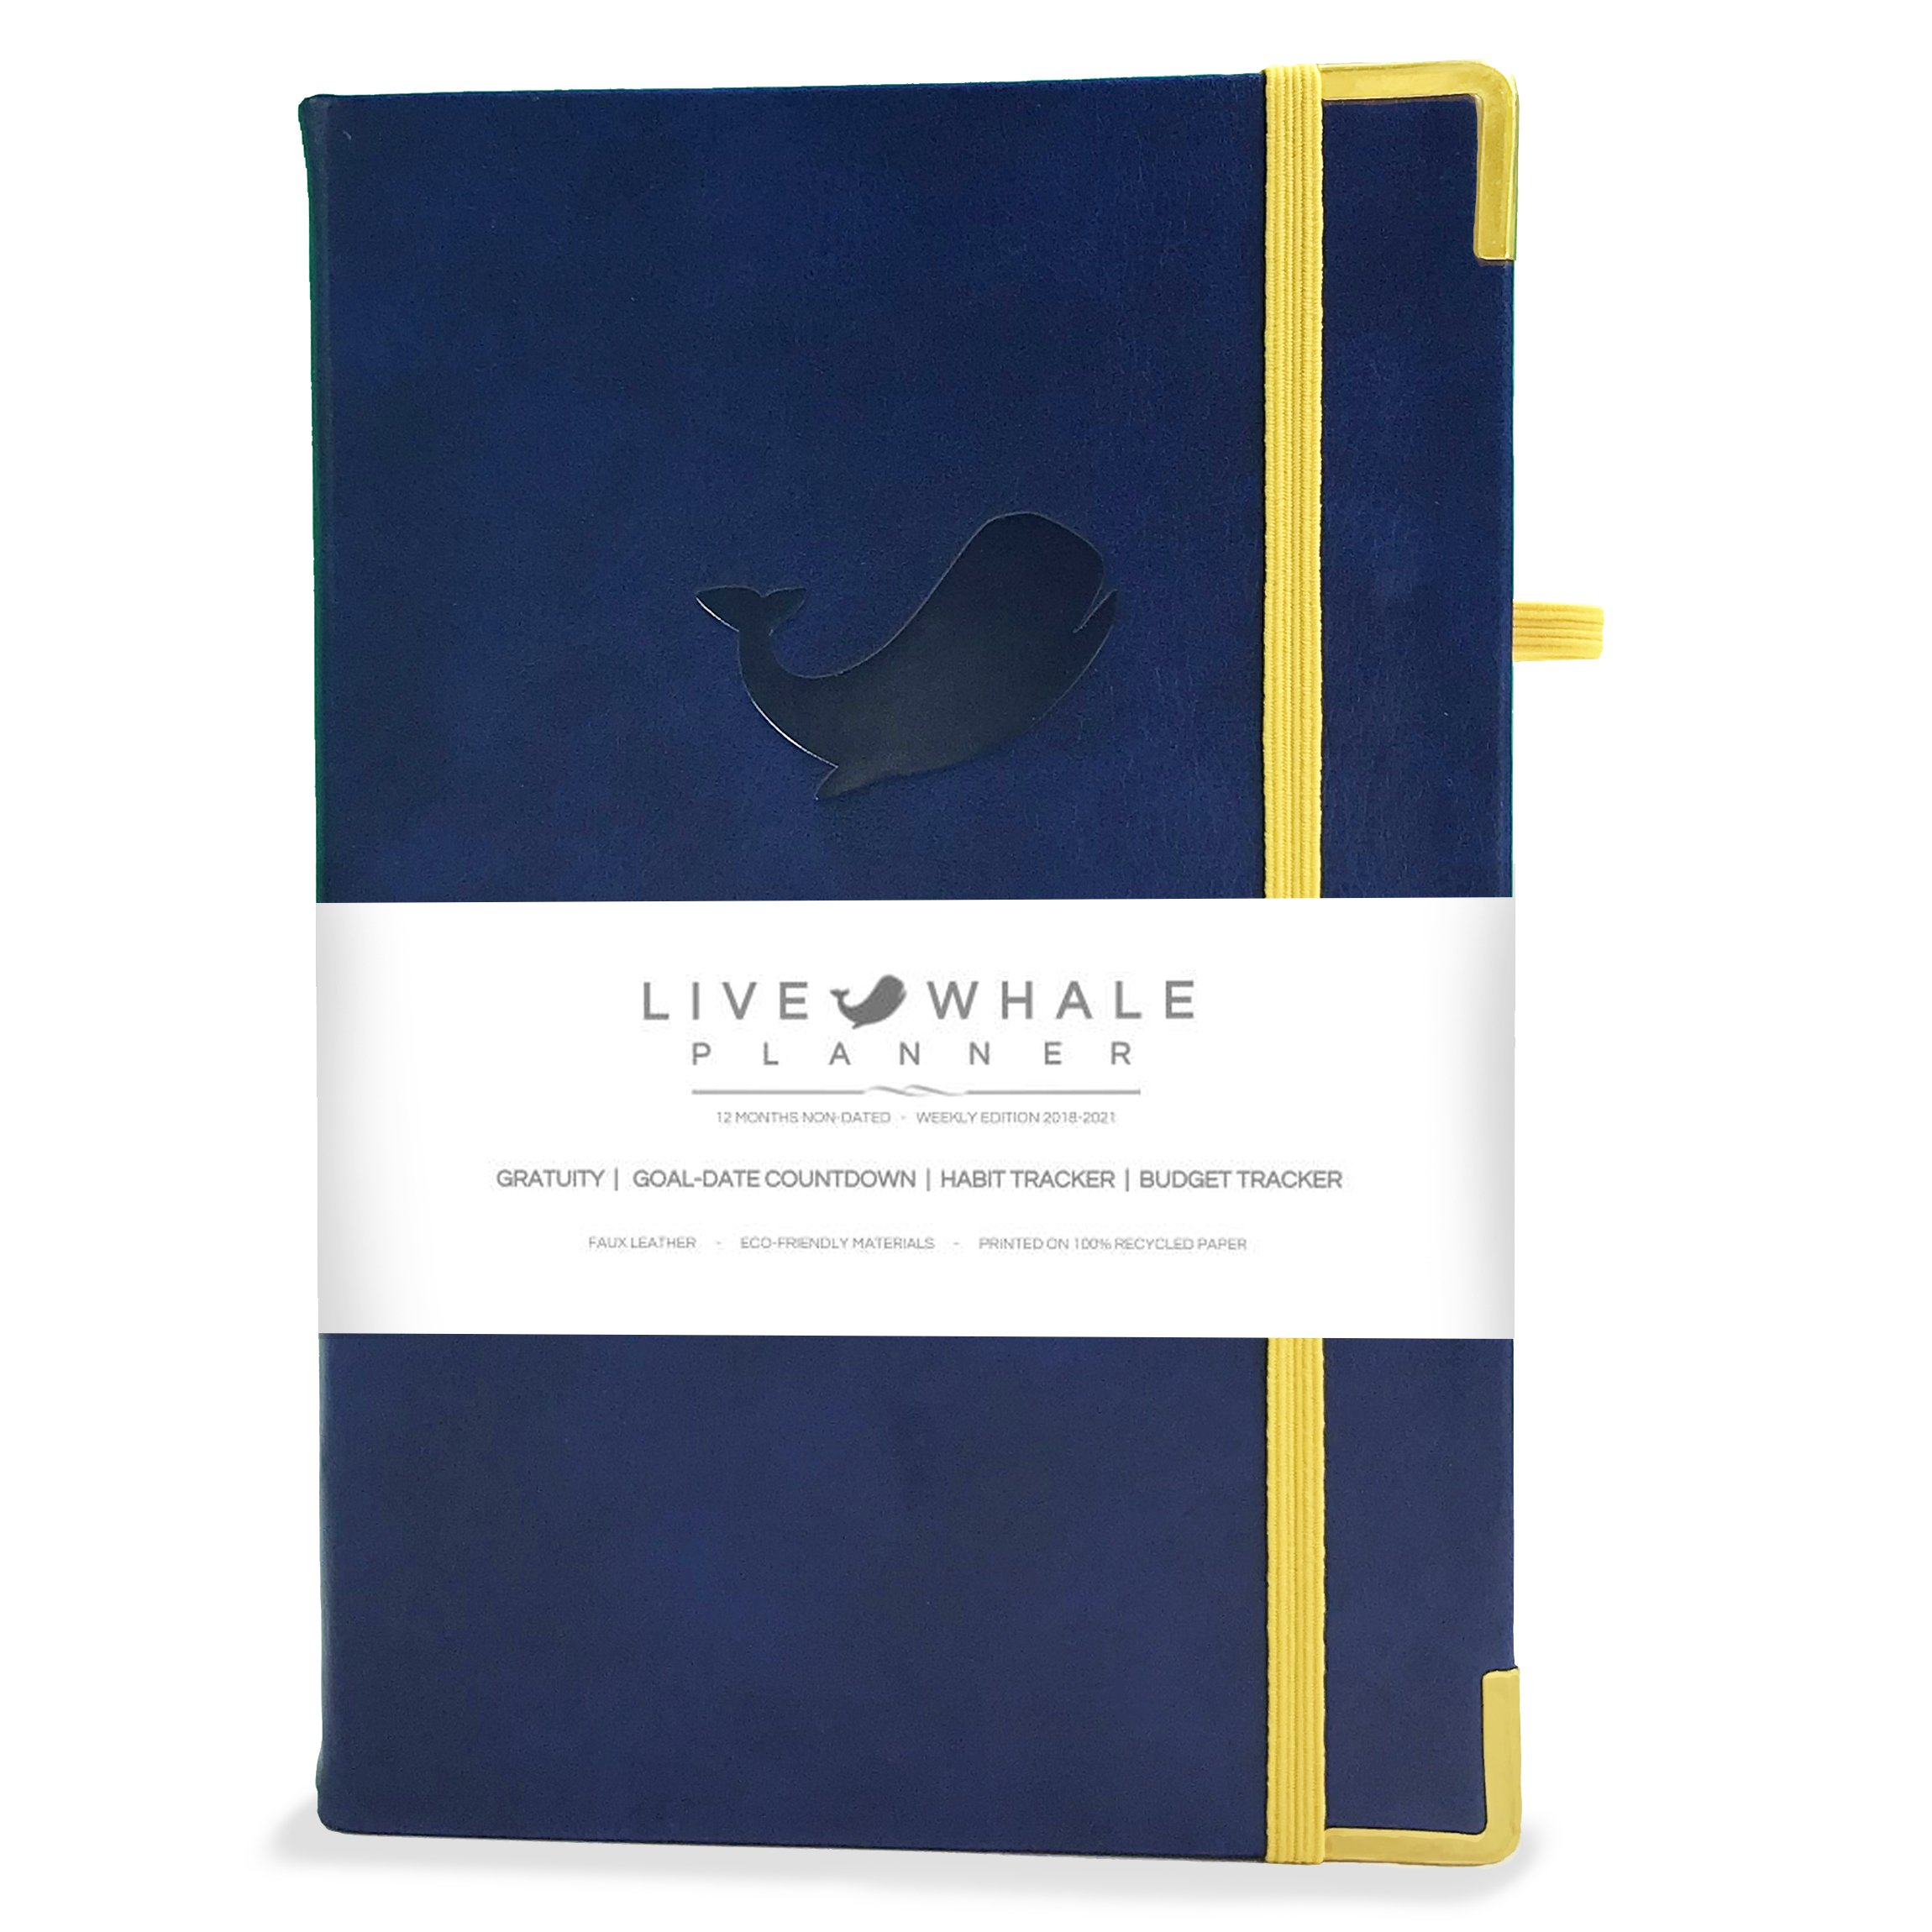 "Live Whale Planner - Weekly Edition 2018-2021 Calendar - 1 Year Non Dated - 8.3'' x 5.5"" Leather Bound - Includes Budget Tracker & Habit Tracker - Agenda Personal Organizer"